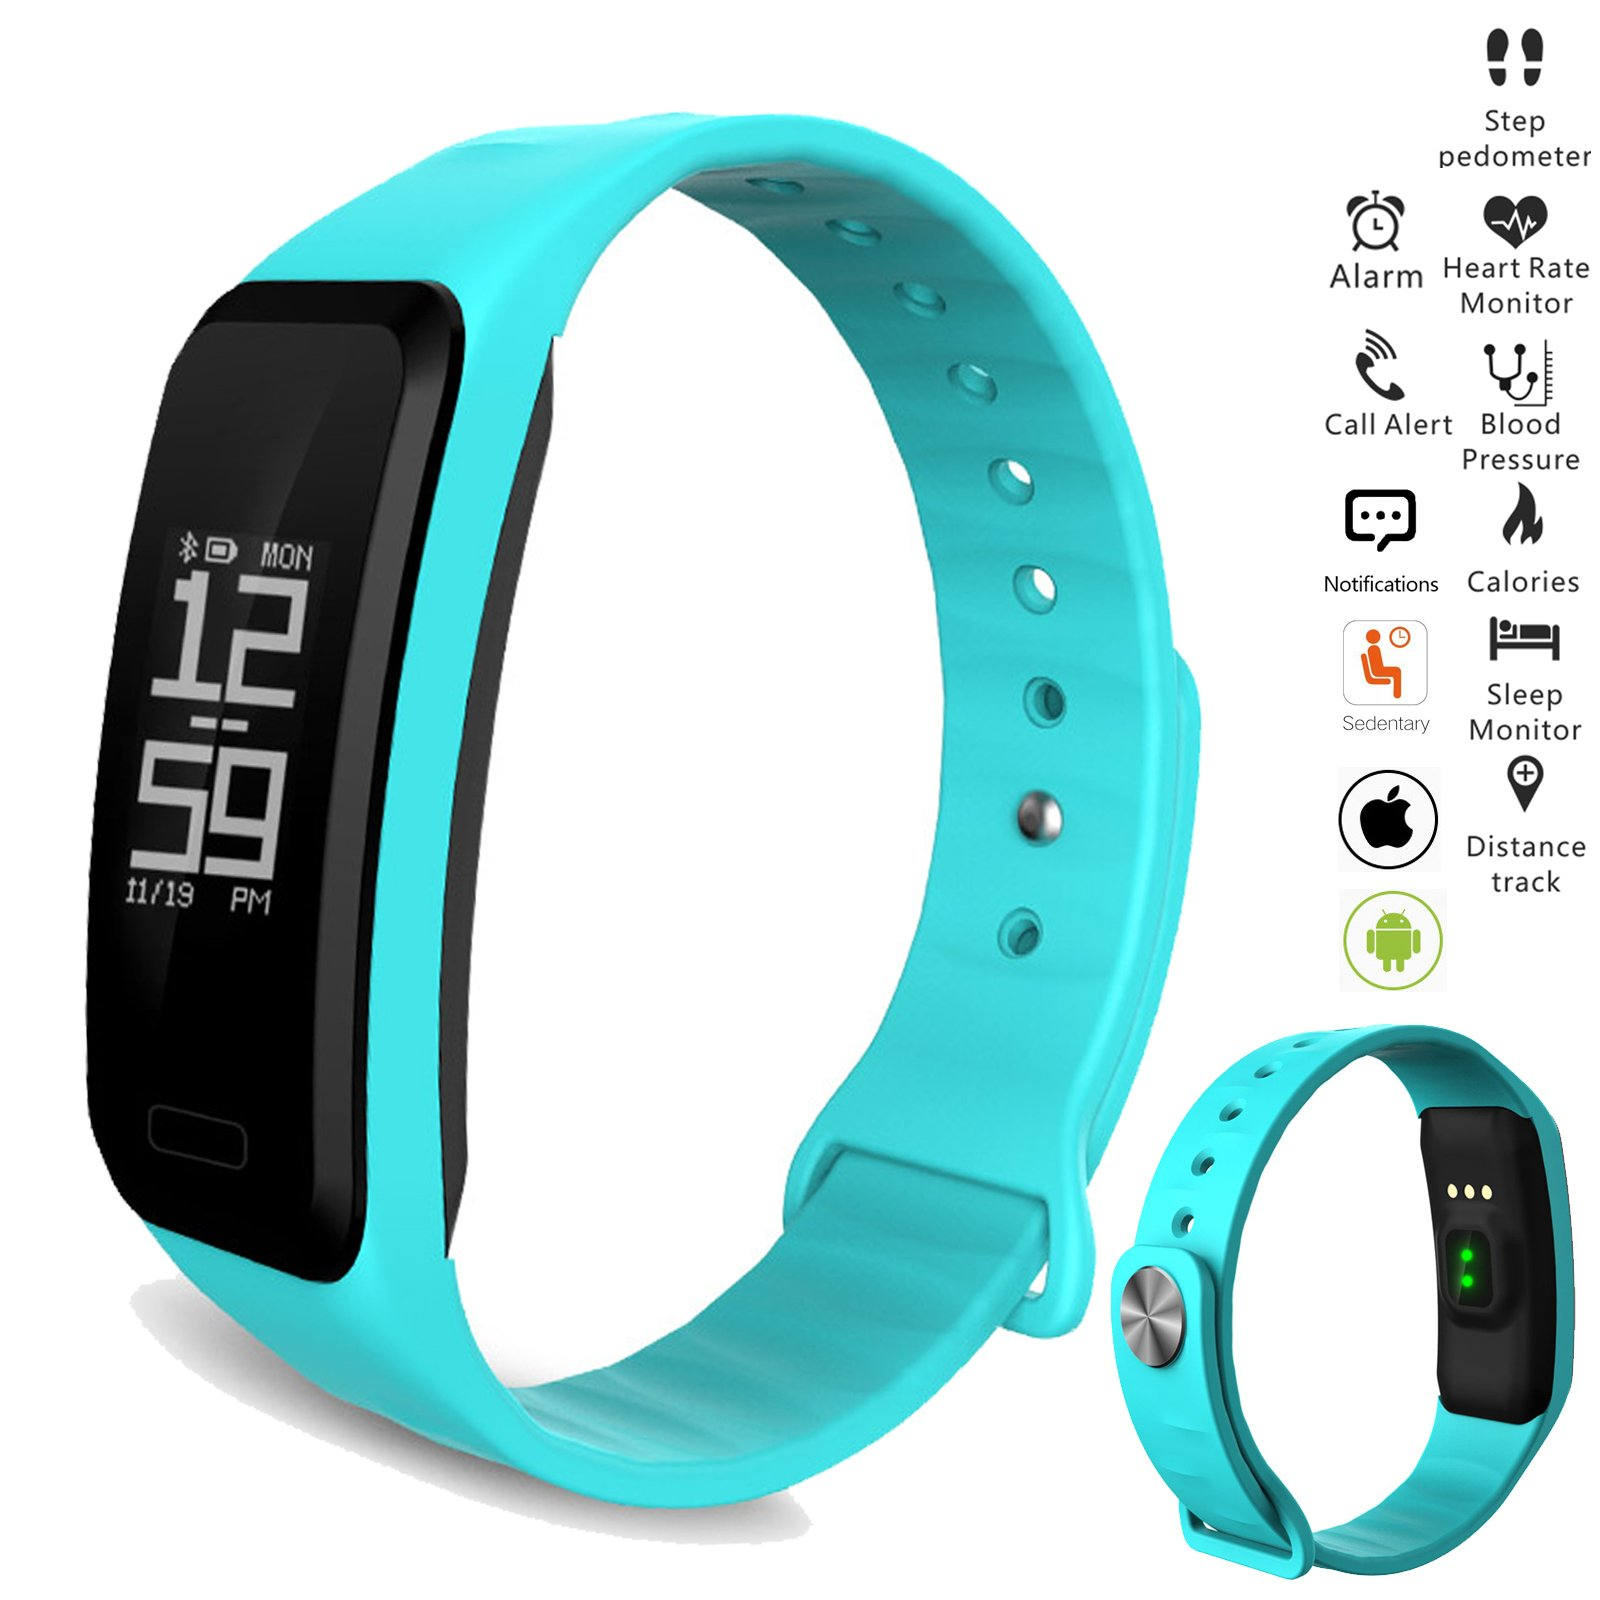 Fashionlive Smart Band Wristband Heart Rate Blood Pressure Oxygen Monitor Waterproof OLED Touch Screen Pedometer Sedentary Reminder for ios iphone Android Phones (Blue) by Fashionlive